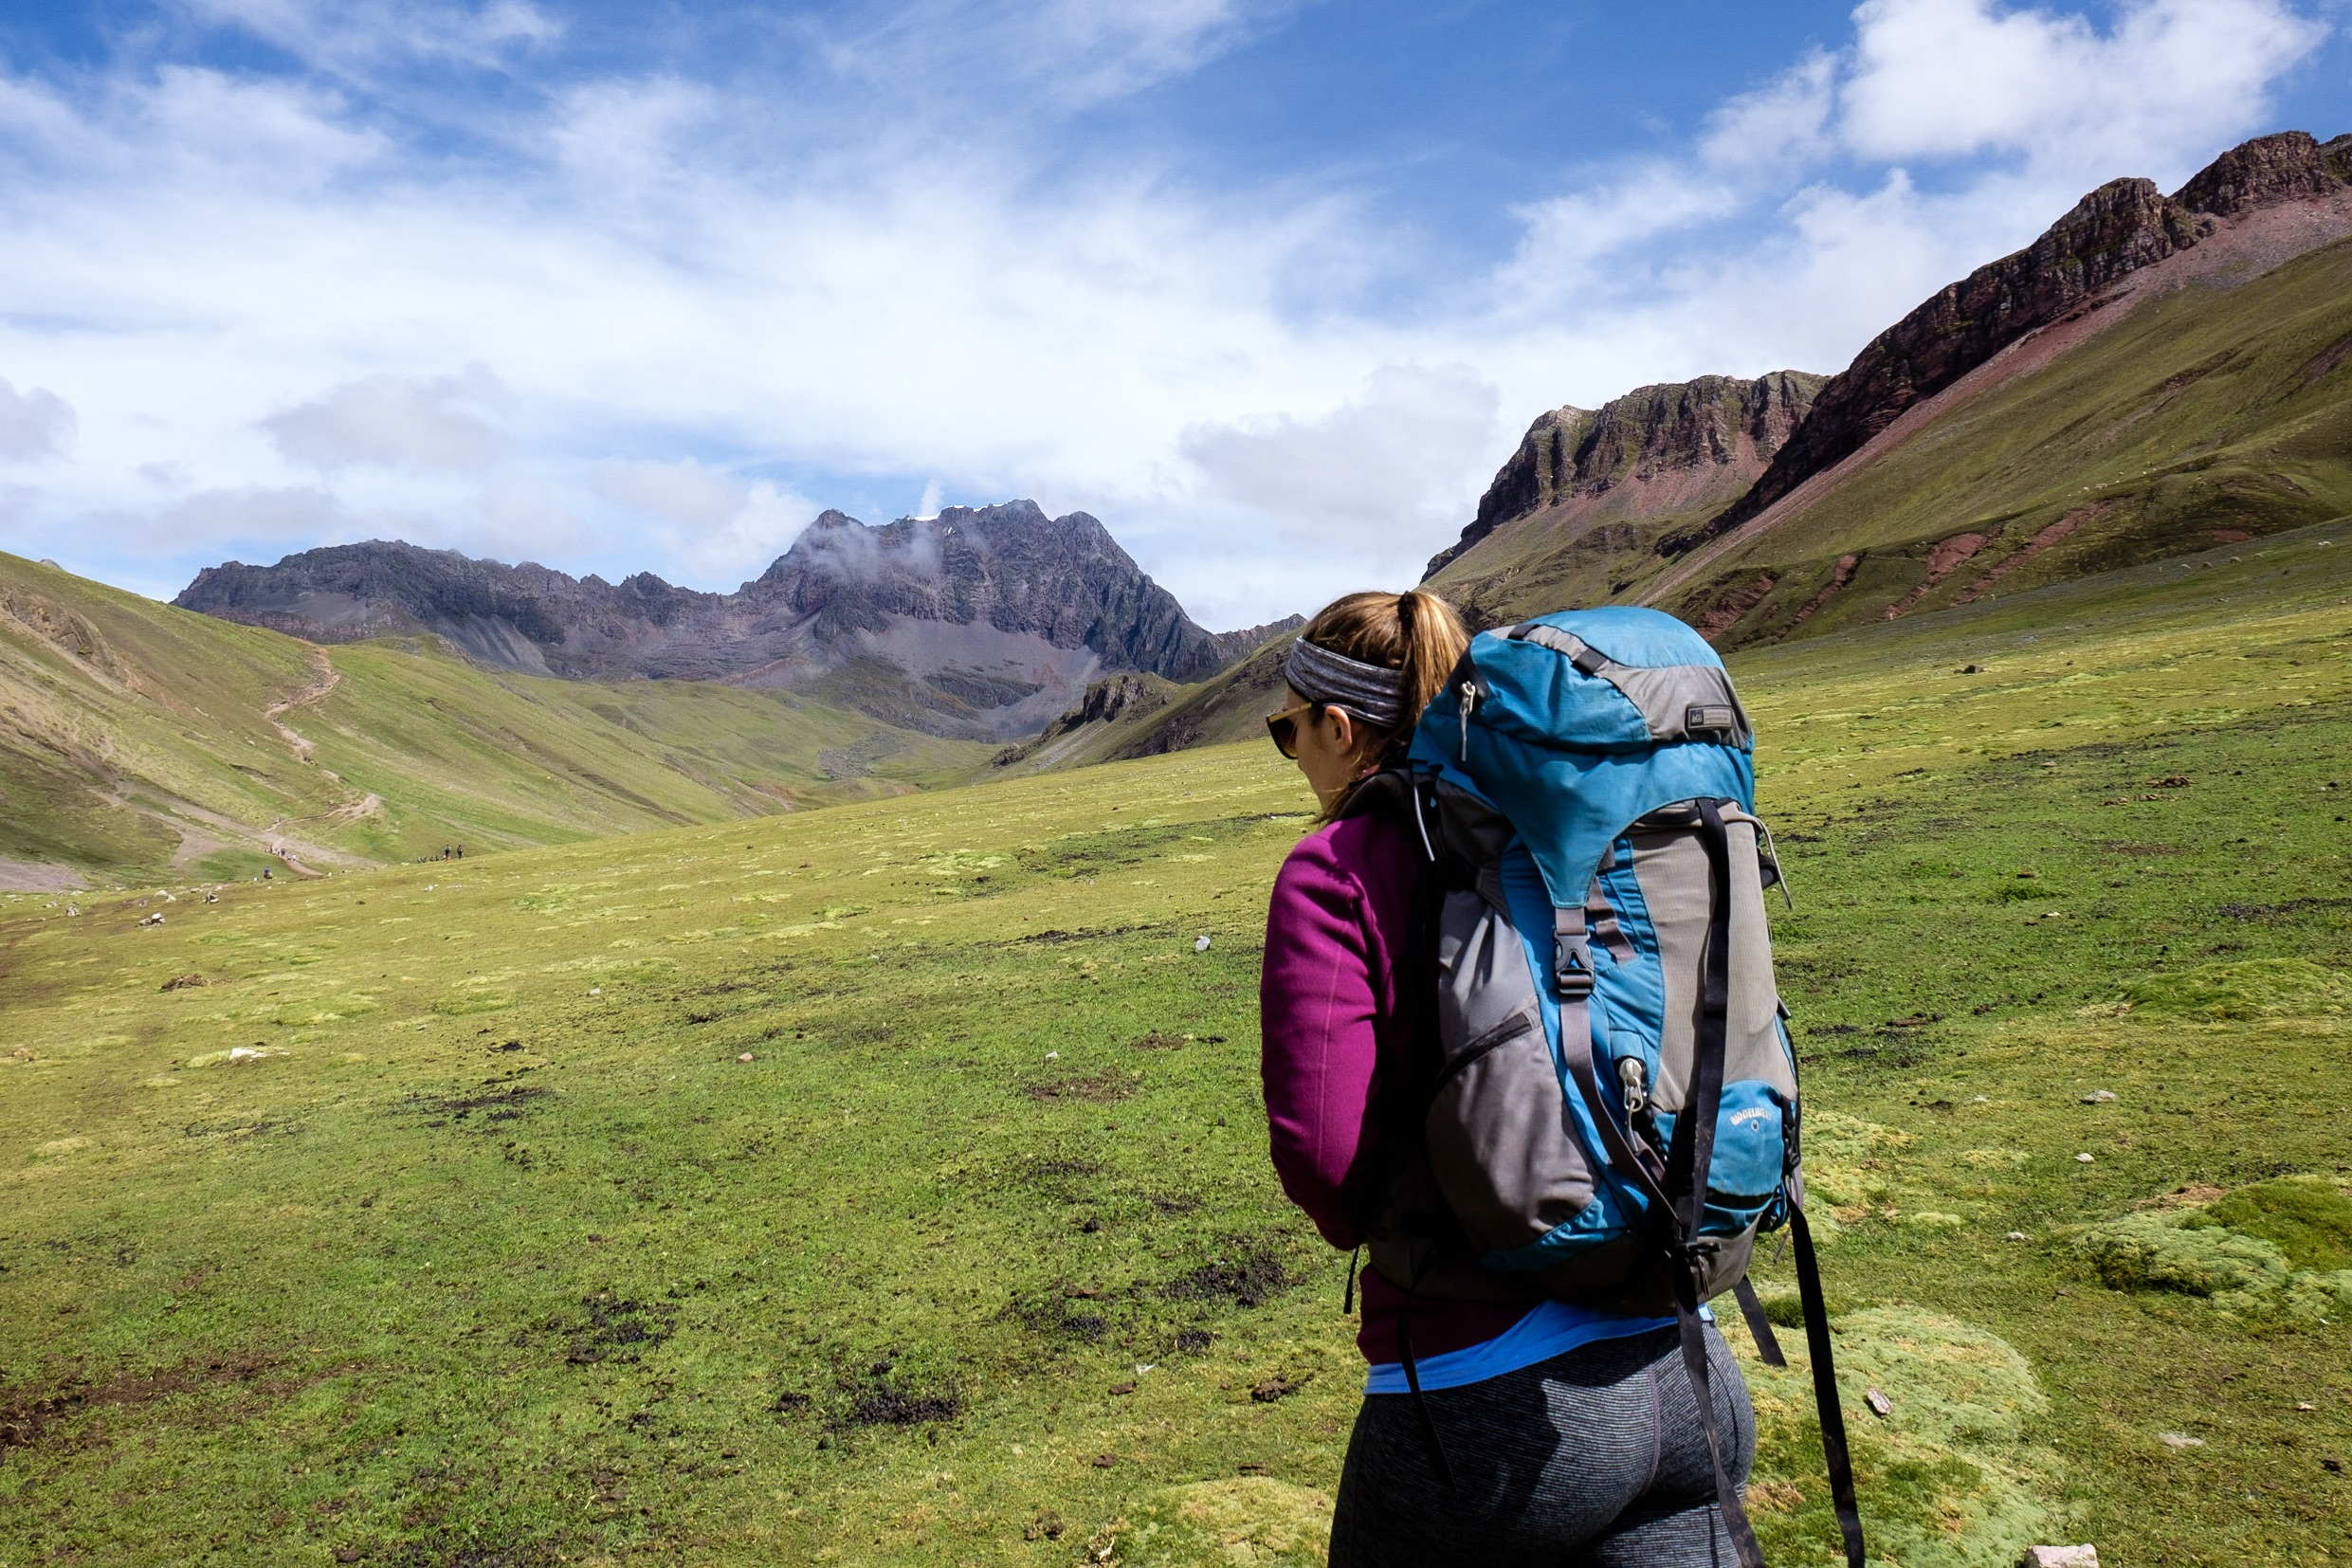 the hiking trip Find trails and other hiking and backpacking opportunities in state parks, national forests and more  the experts to plan your trip want to know the best spots .